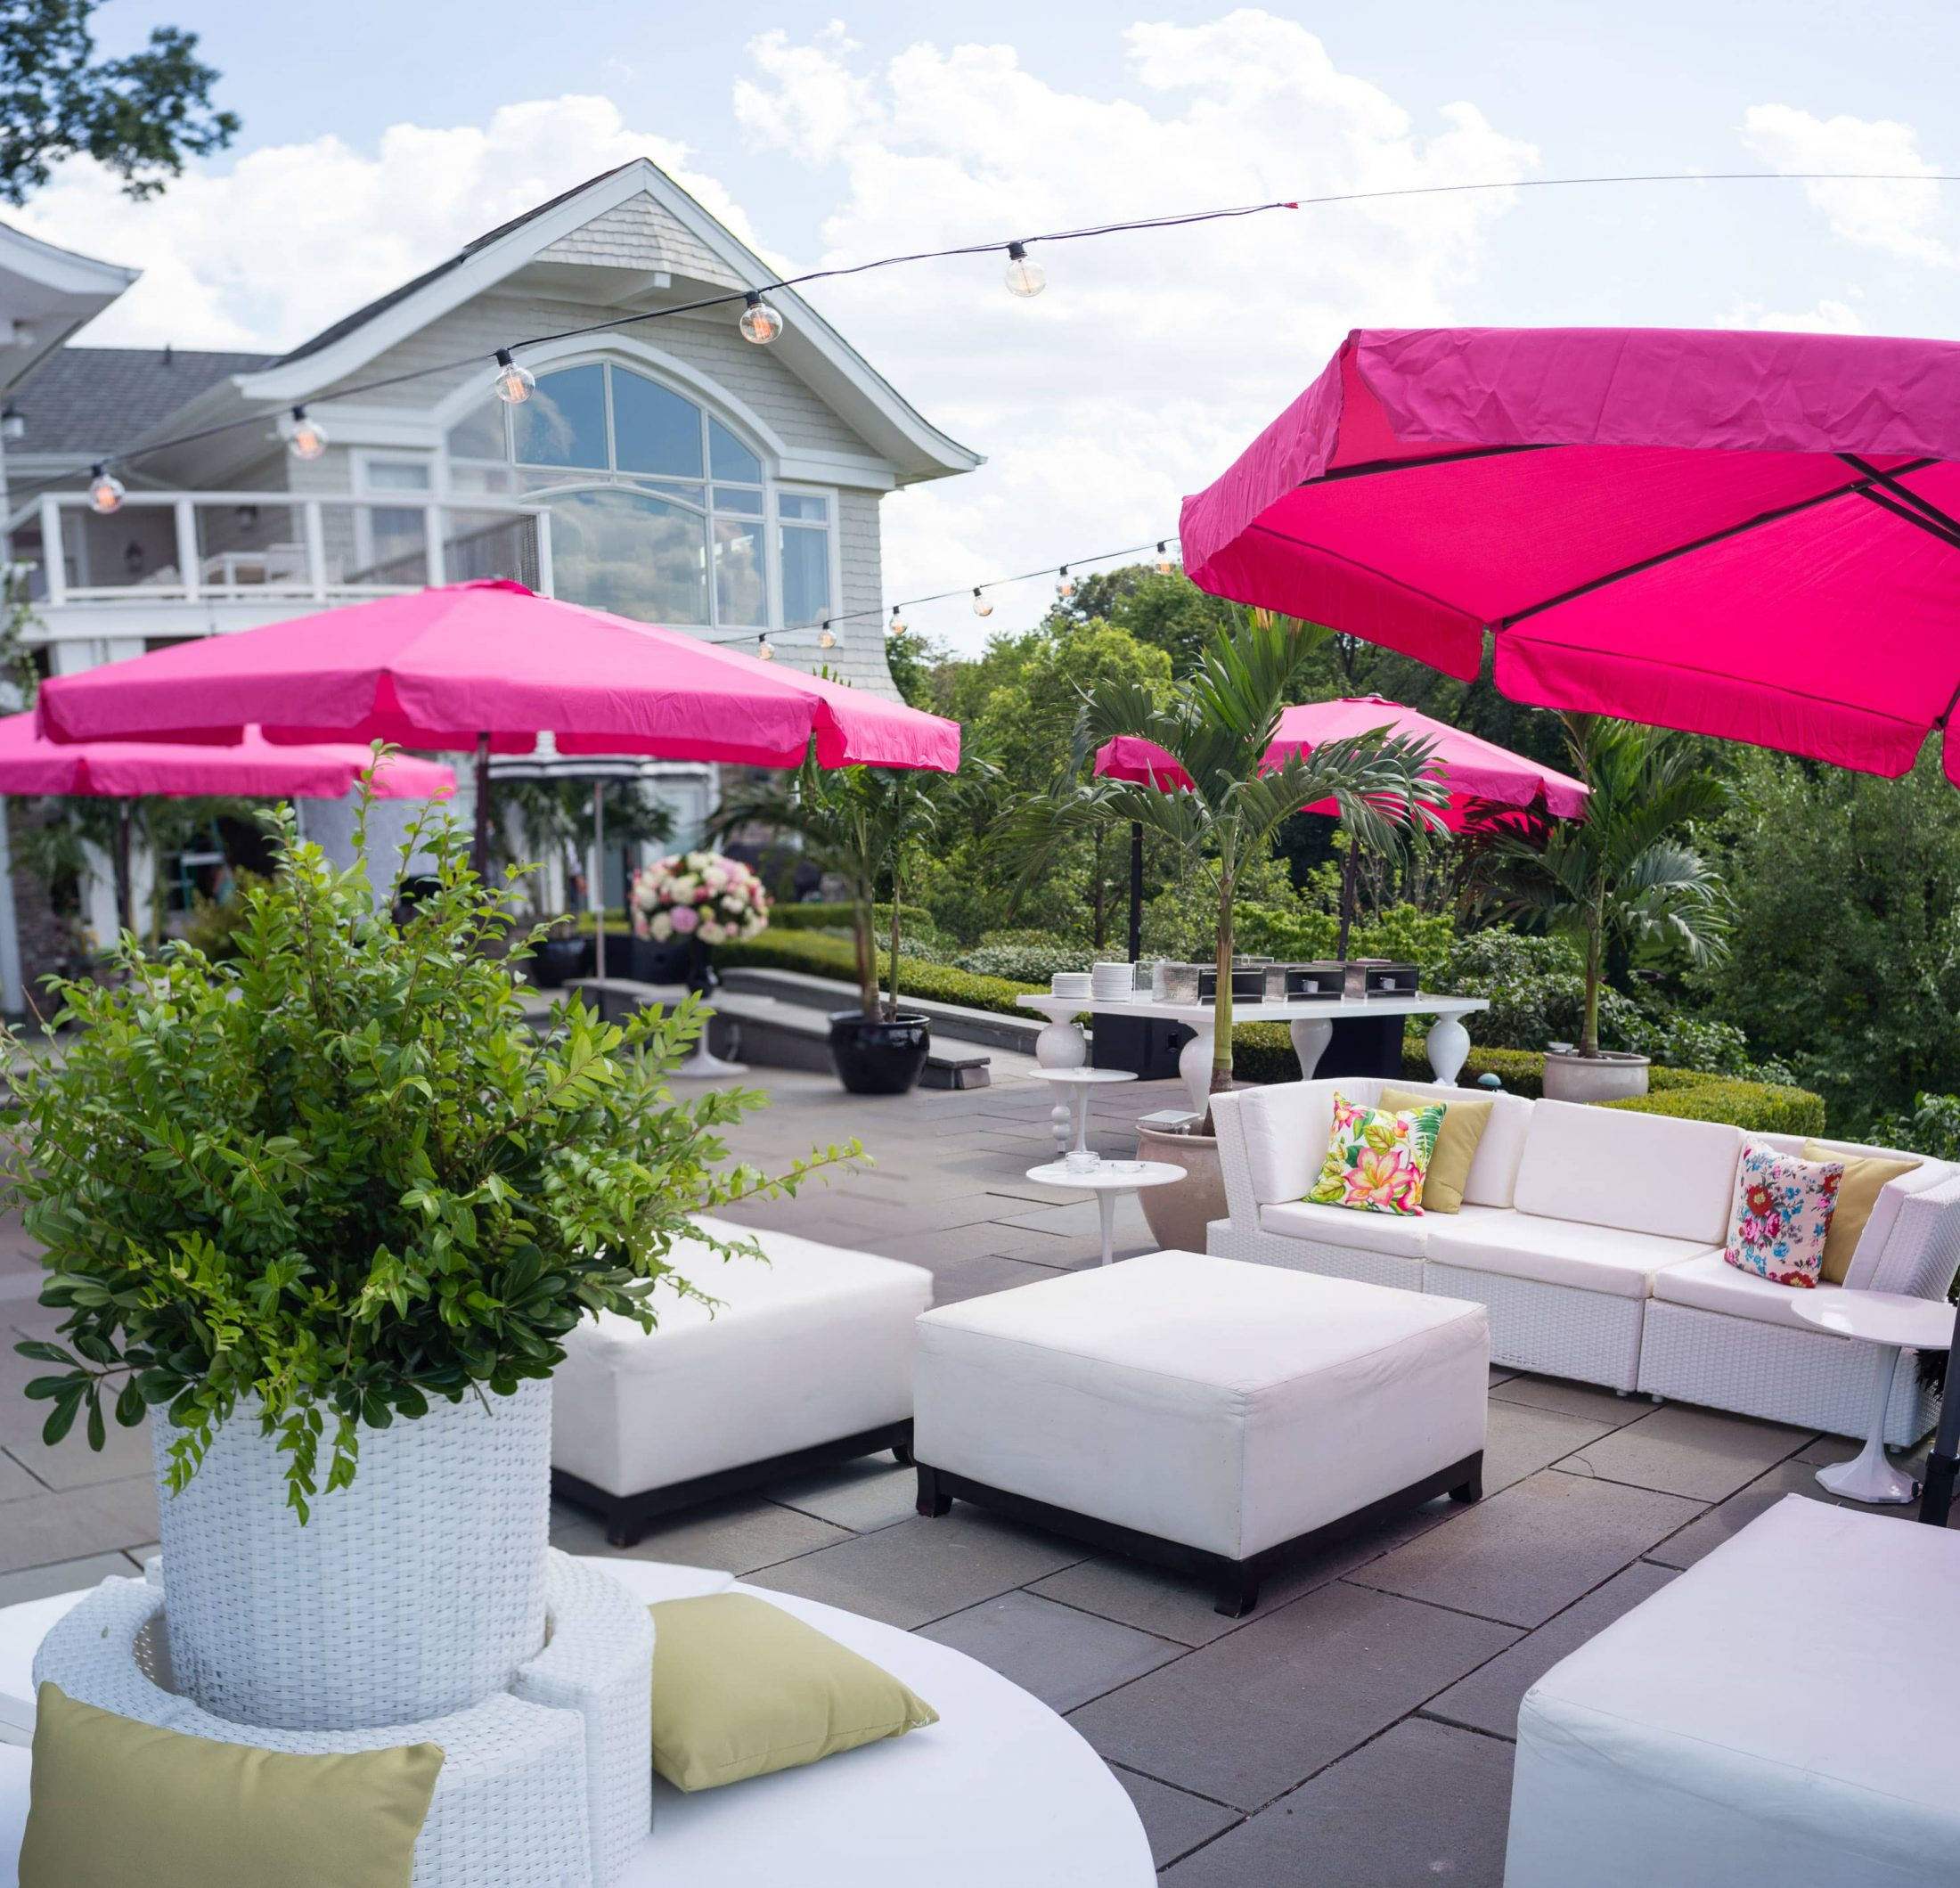 Lounge area with pink umbrellas at this South Beach-inspired first birthday pool party in the Hamptons | Photo by Cava Photo